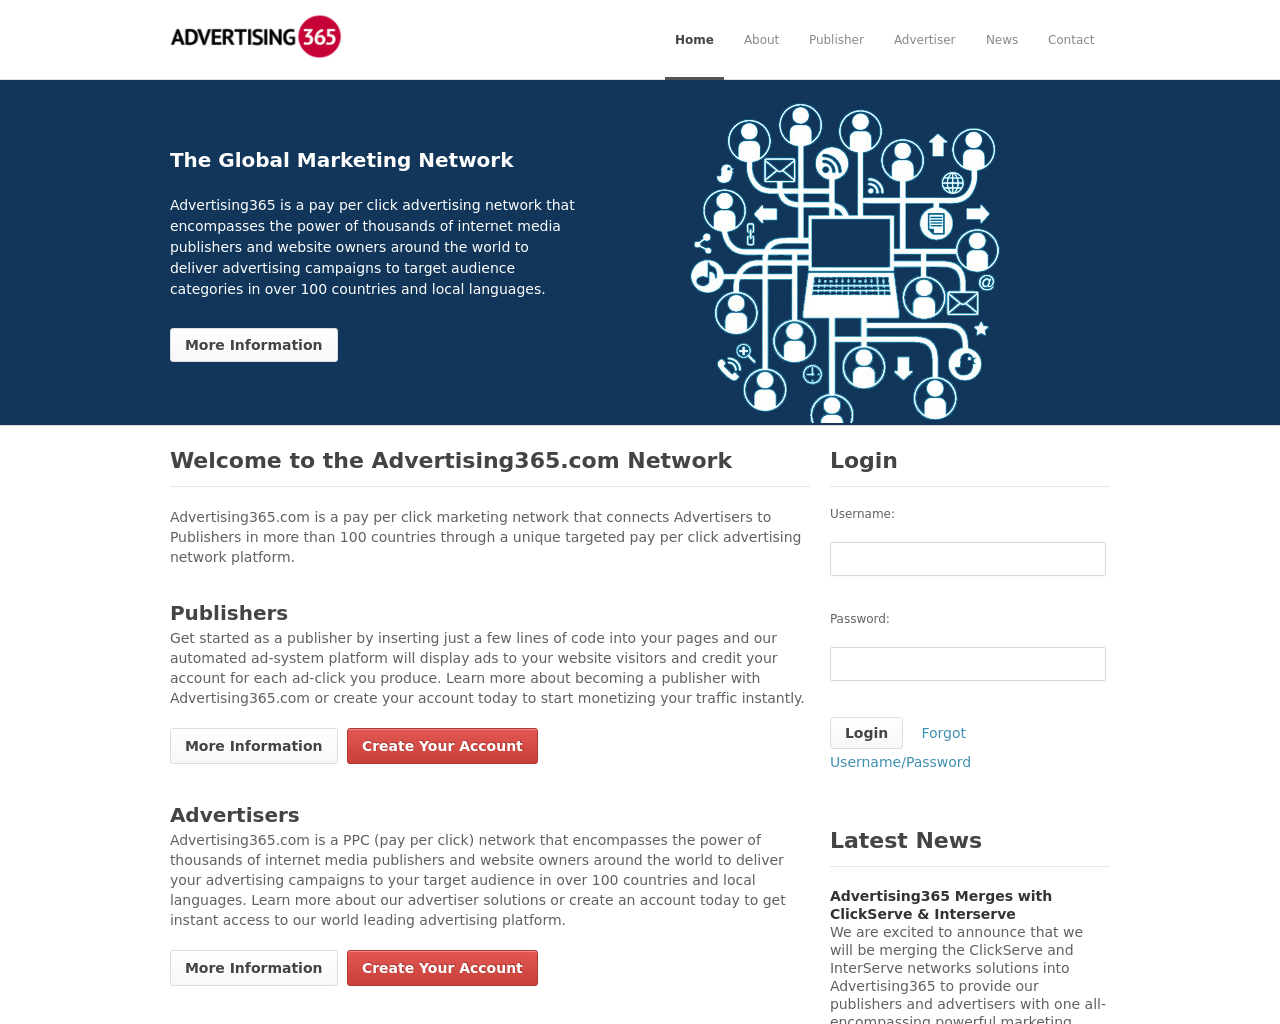 Advertising365-Network-Advertising-Reviews-Pricing